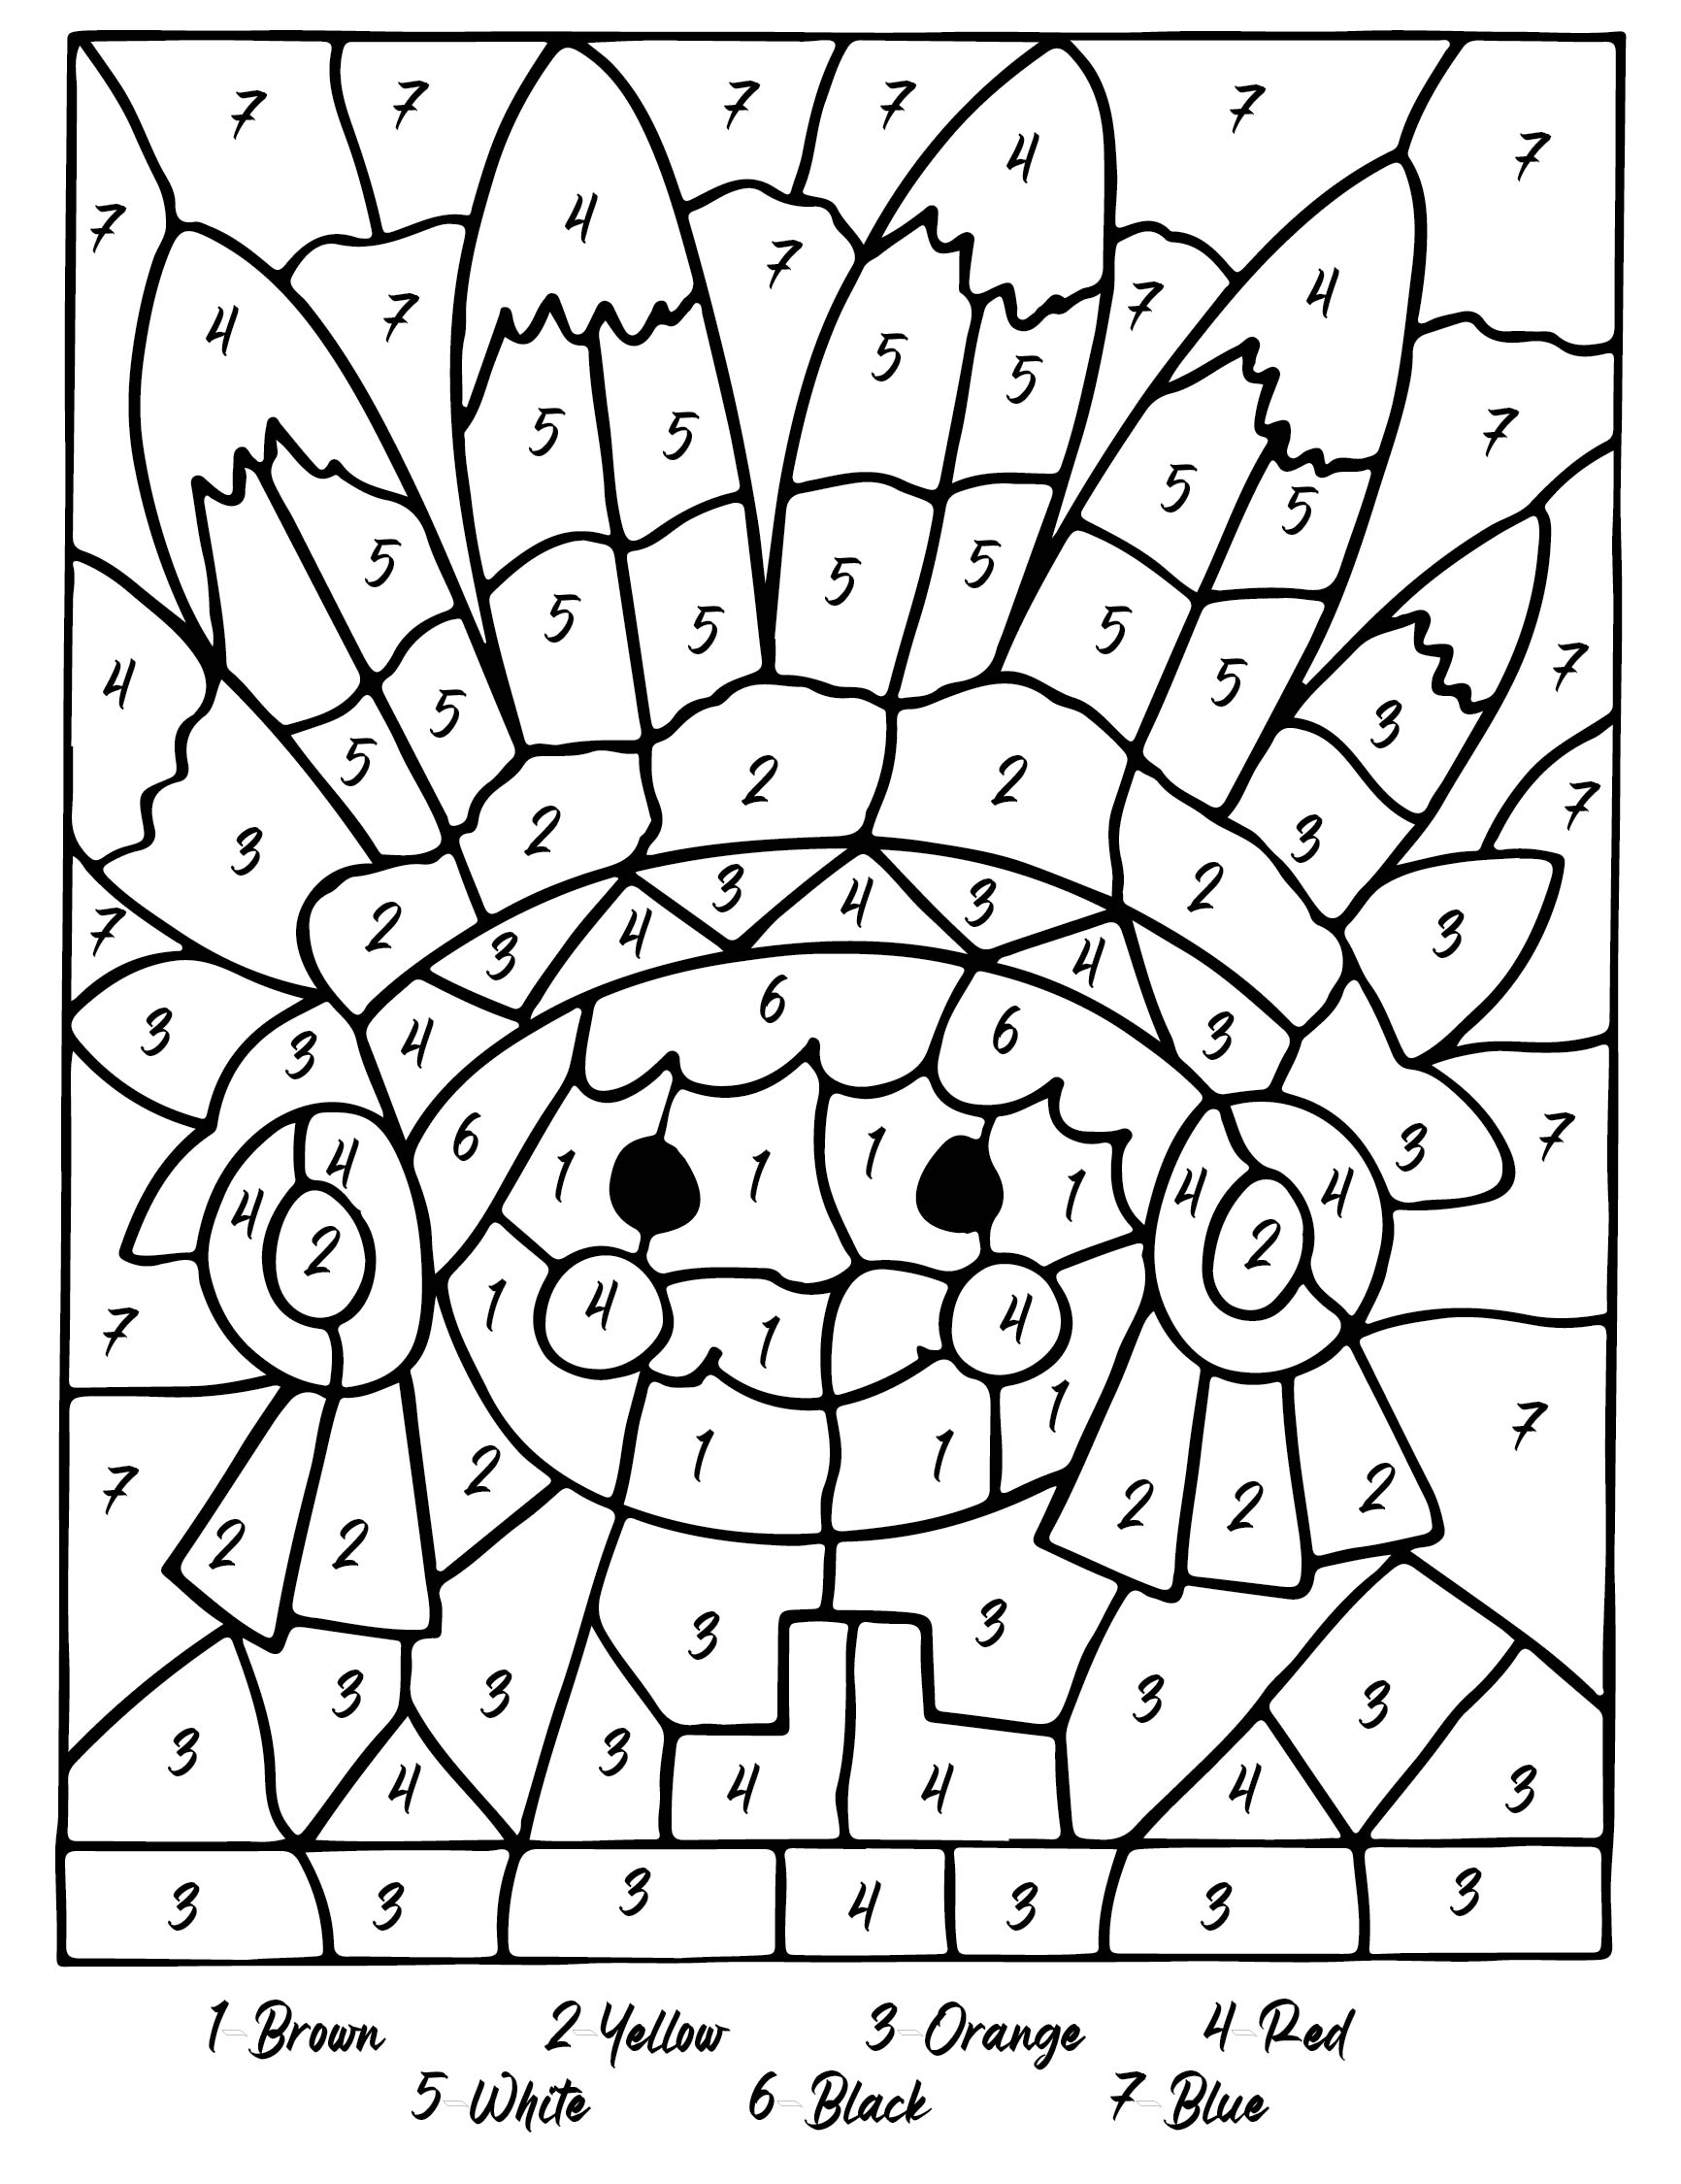 7 Images of Thanksgiving Color By Number Coloring Pages Printable